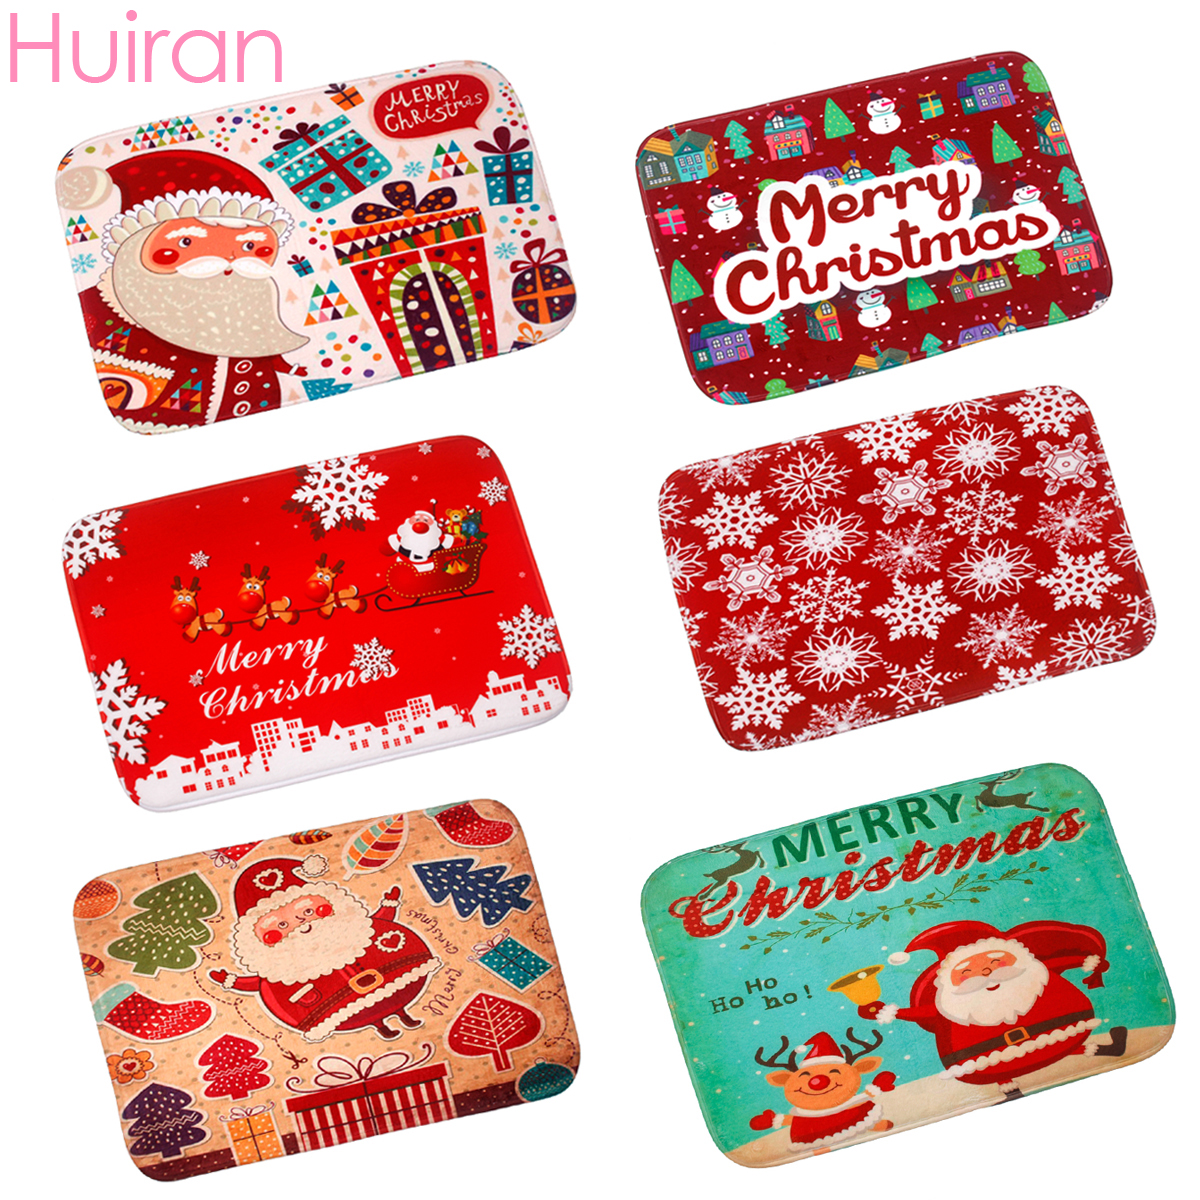 huiran santa claus red carpet christmas decoration for home bathroom door living room decor merry christmas accessories supplies